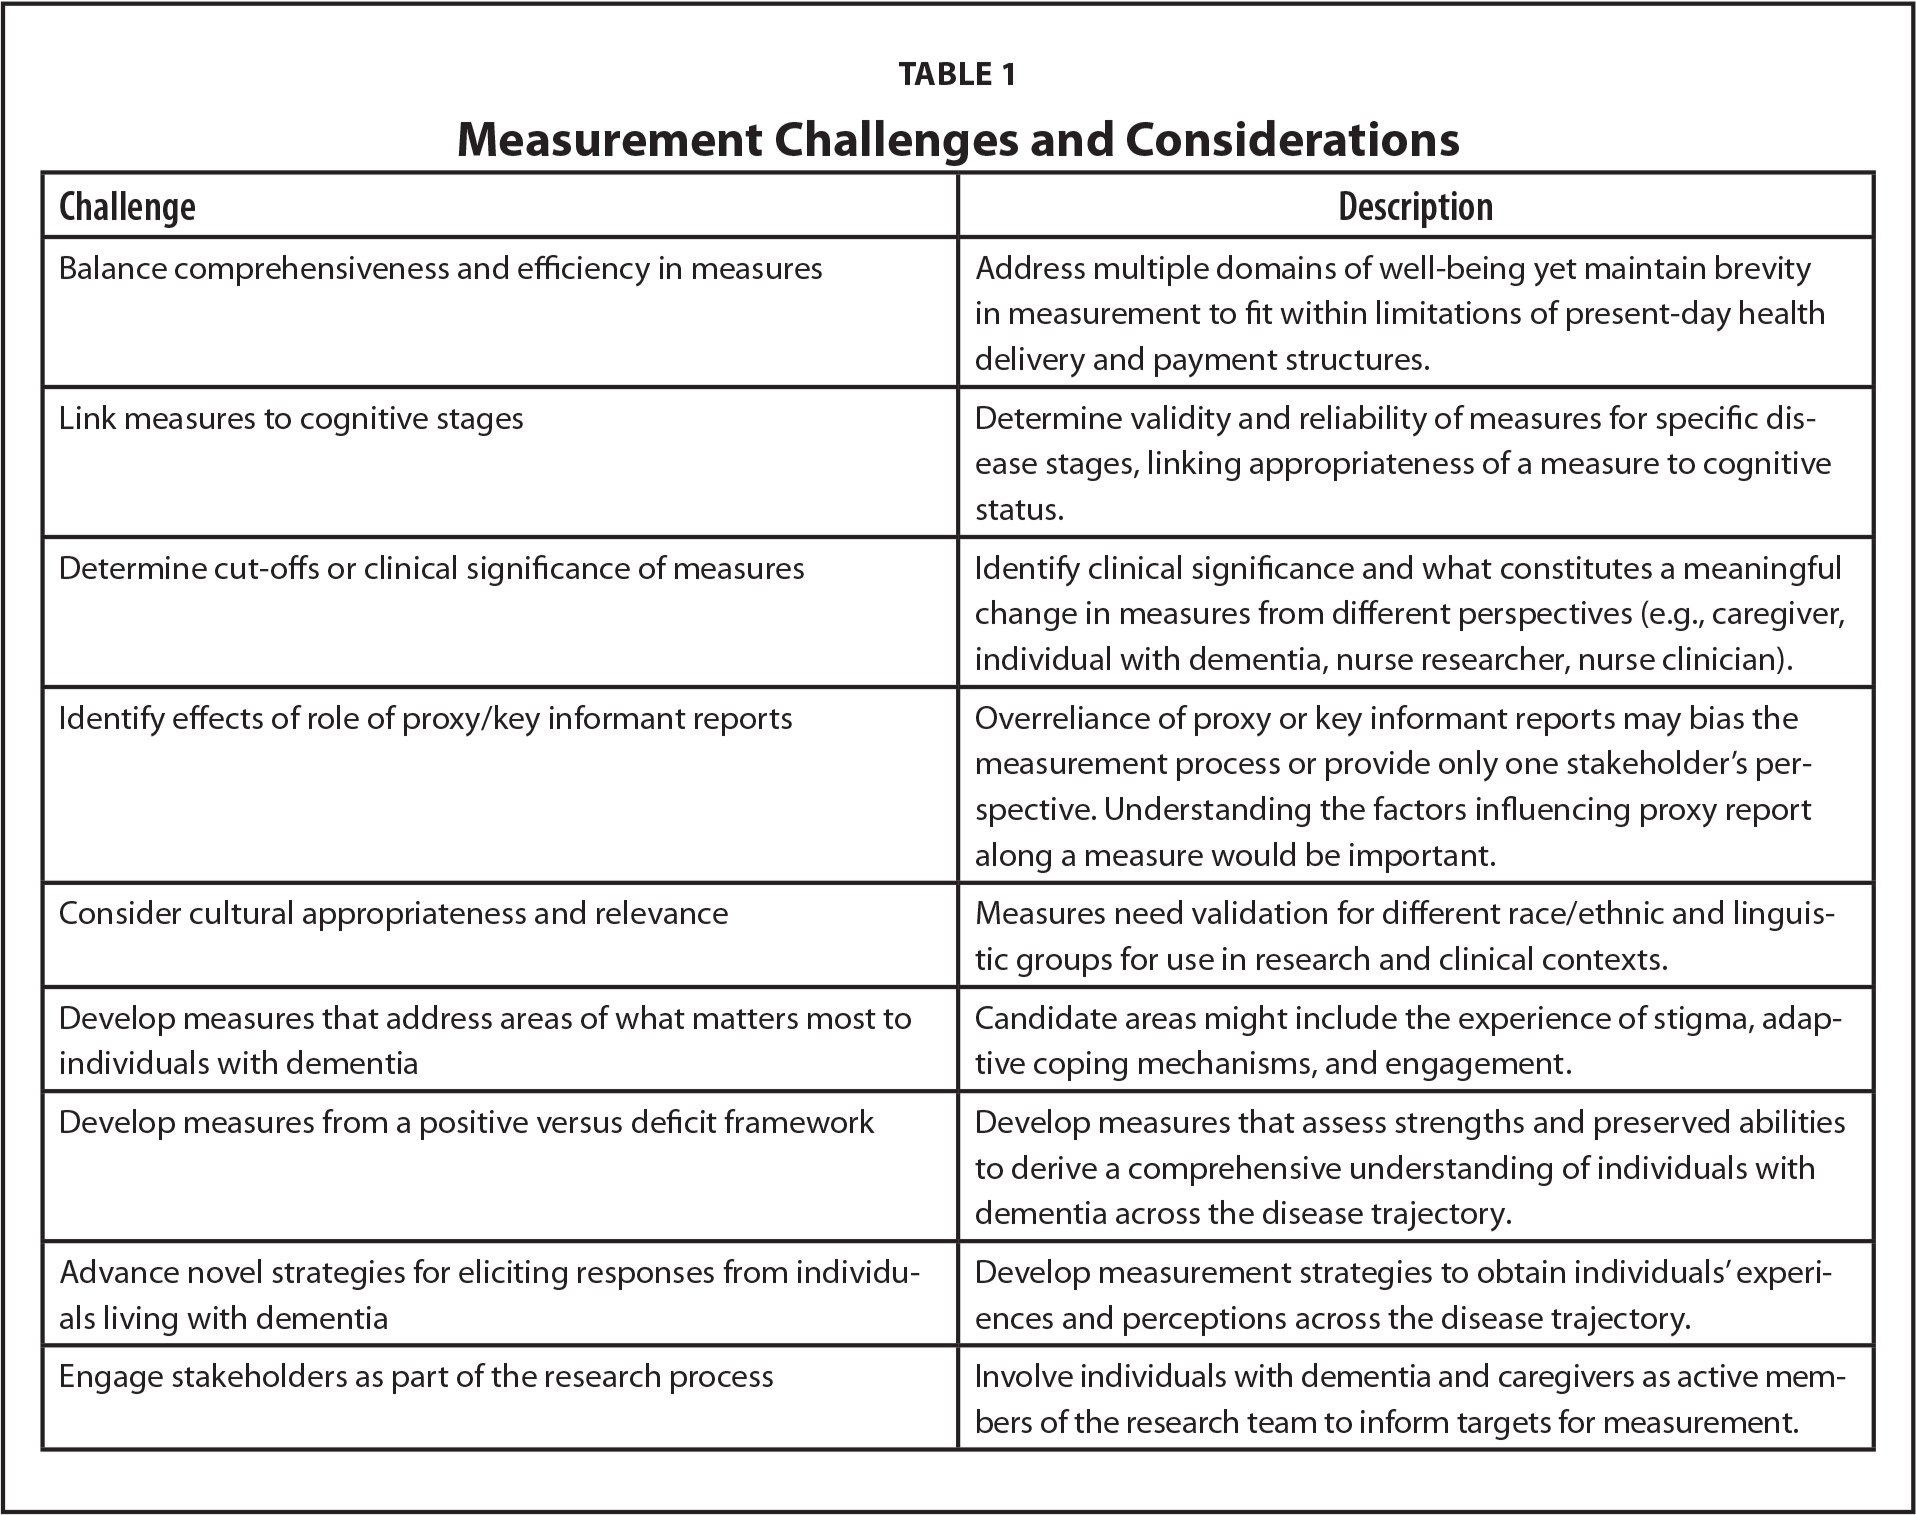 Measurement Challenges and Considerations